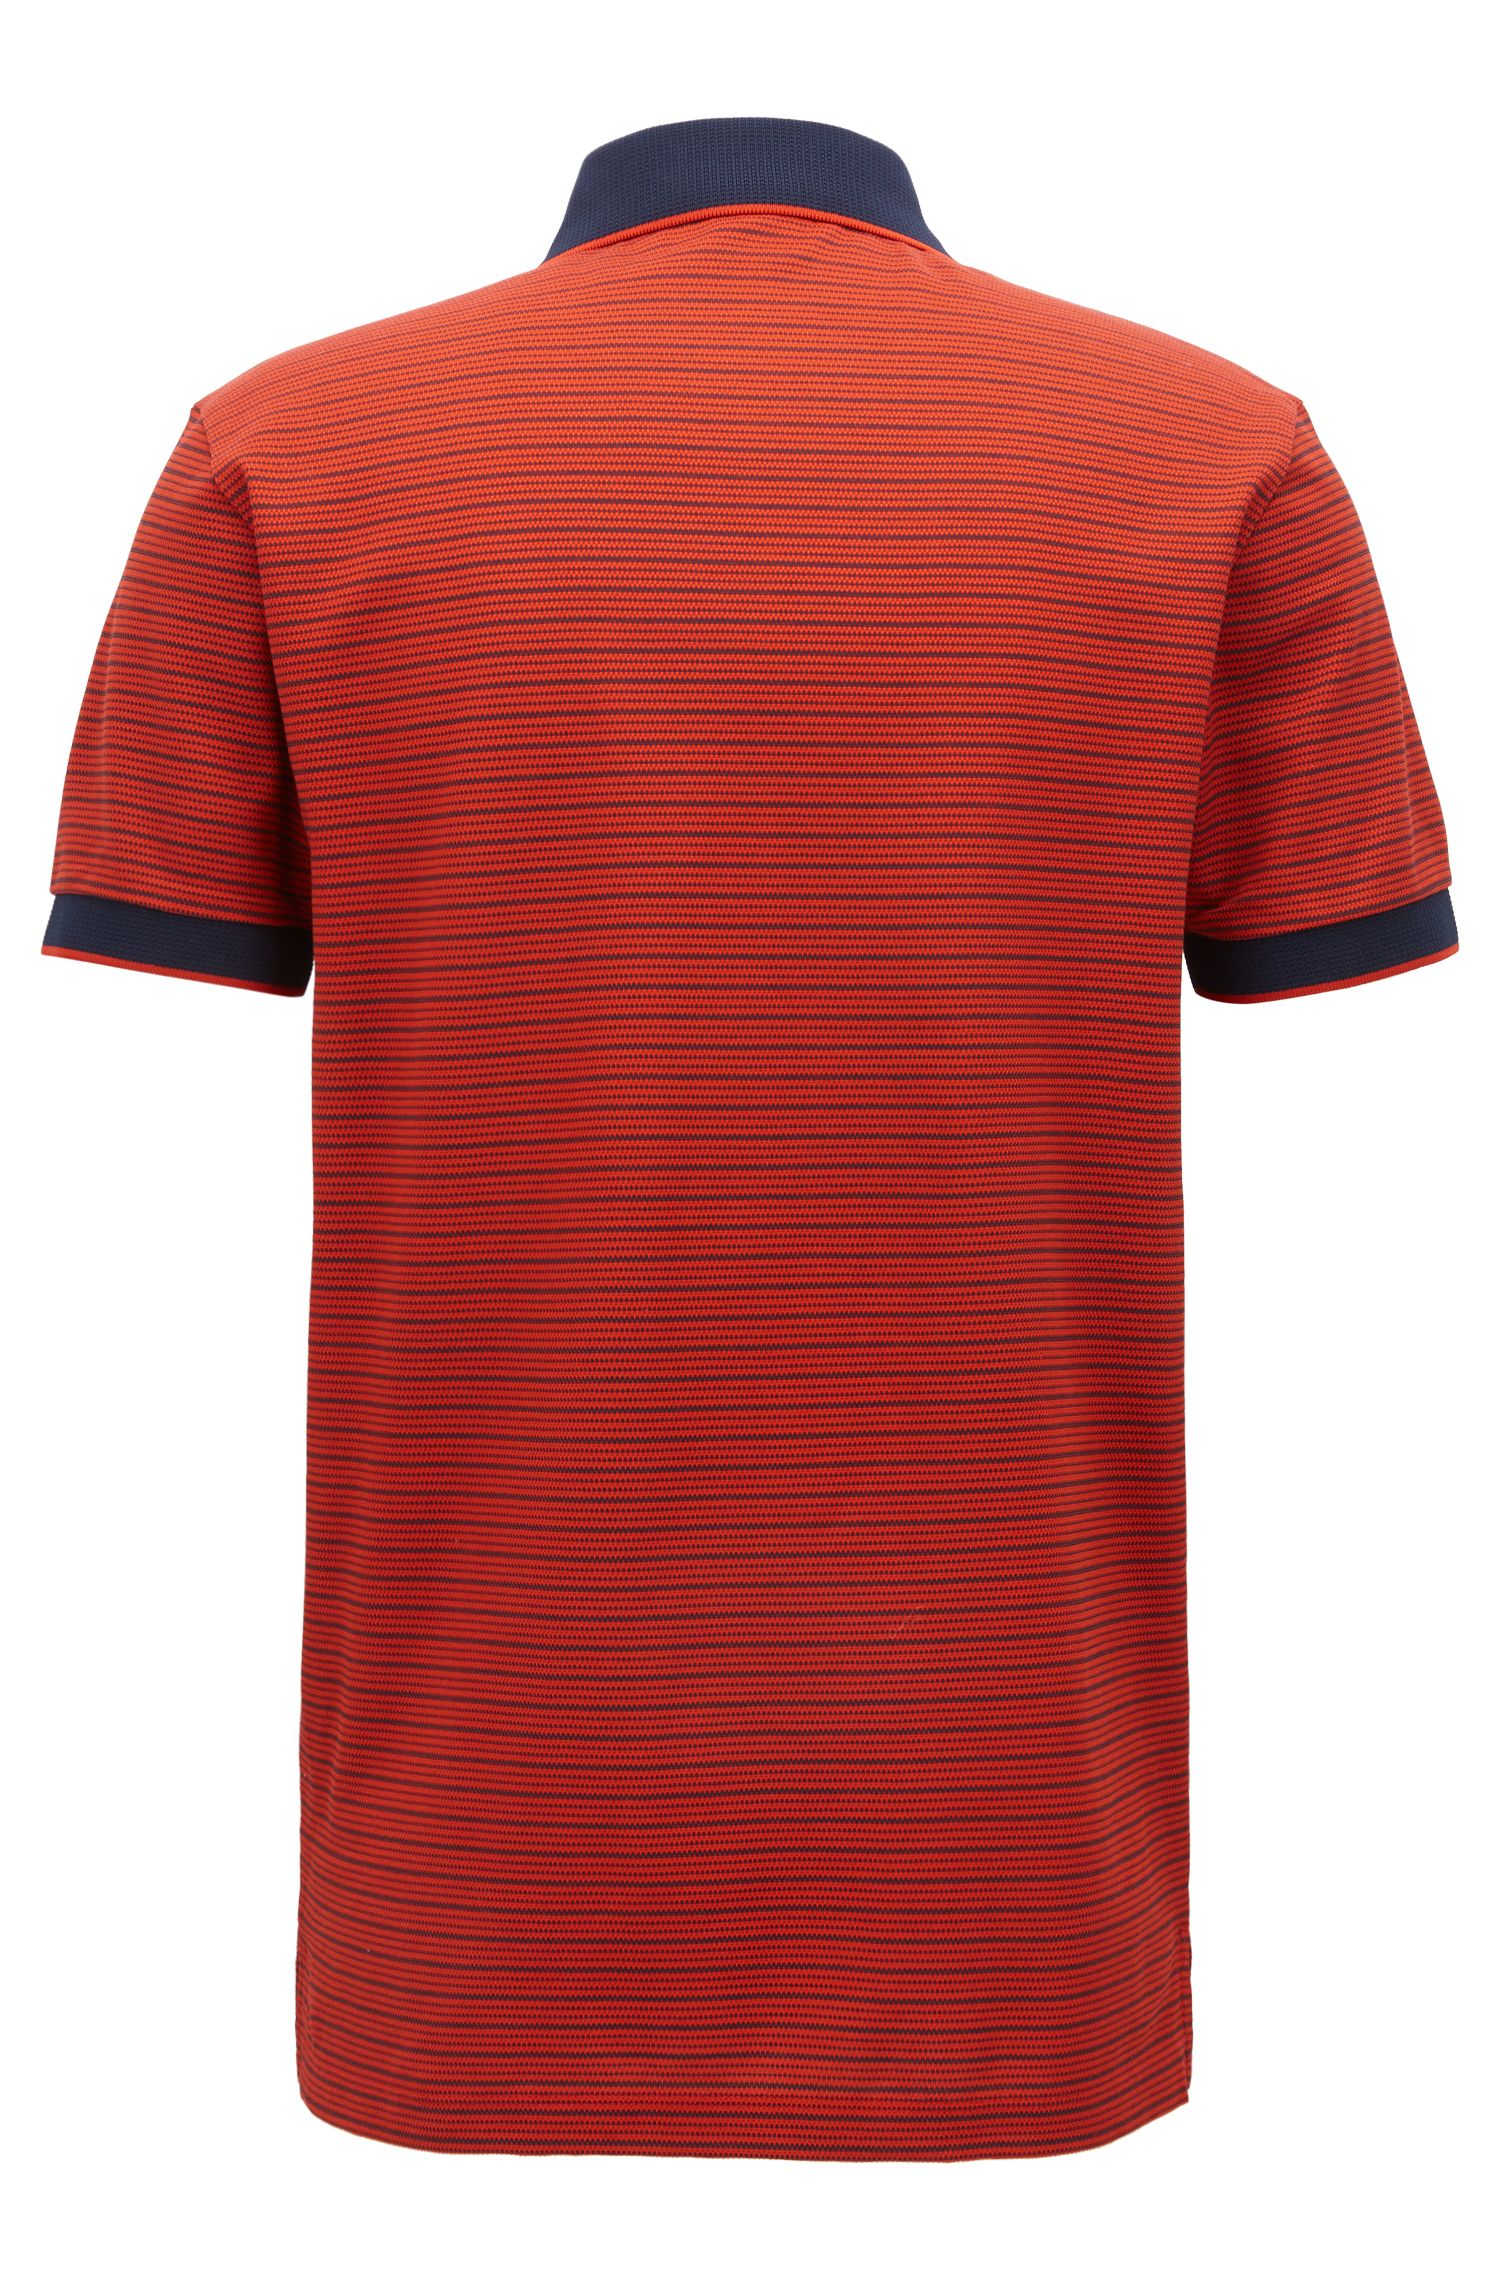 Striped Mercerized Cotton Polo Shirt, Regular Fit | Parlay, Dark Orange